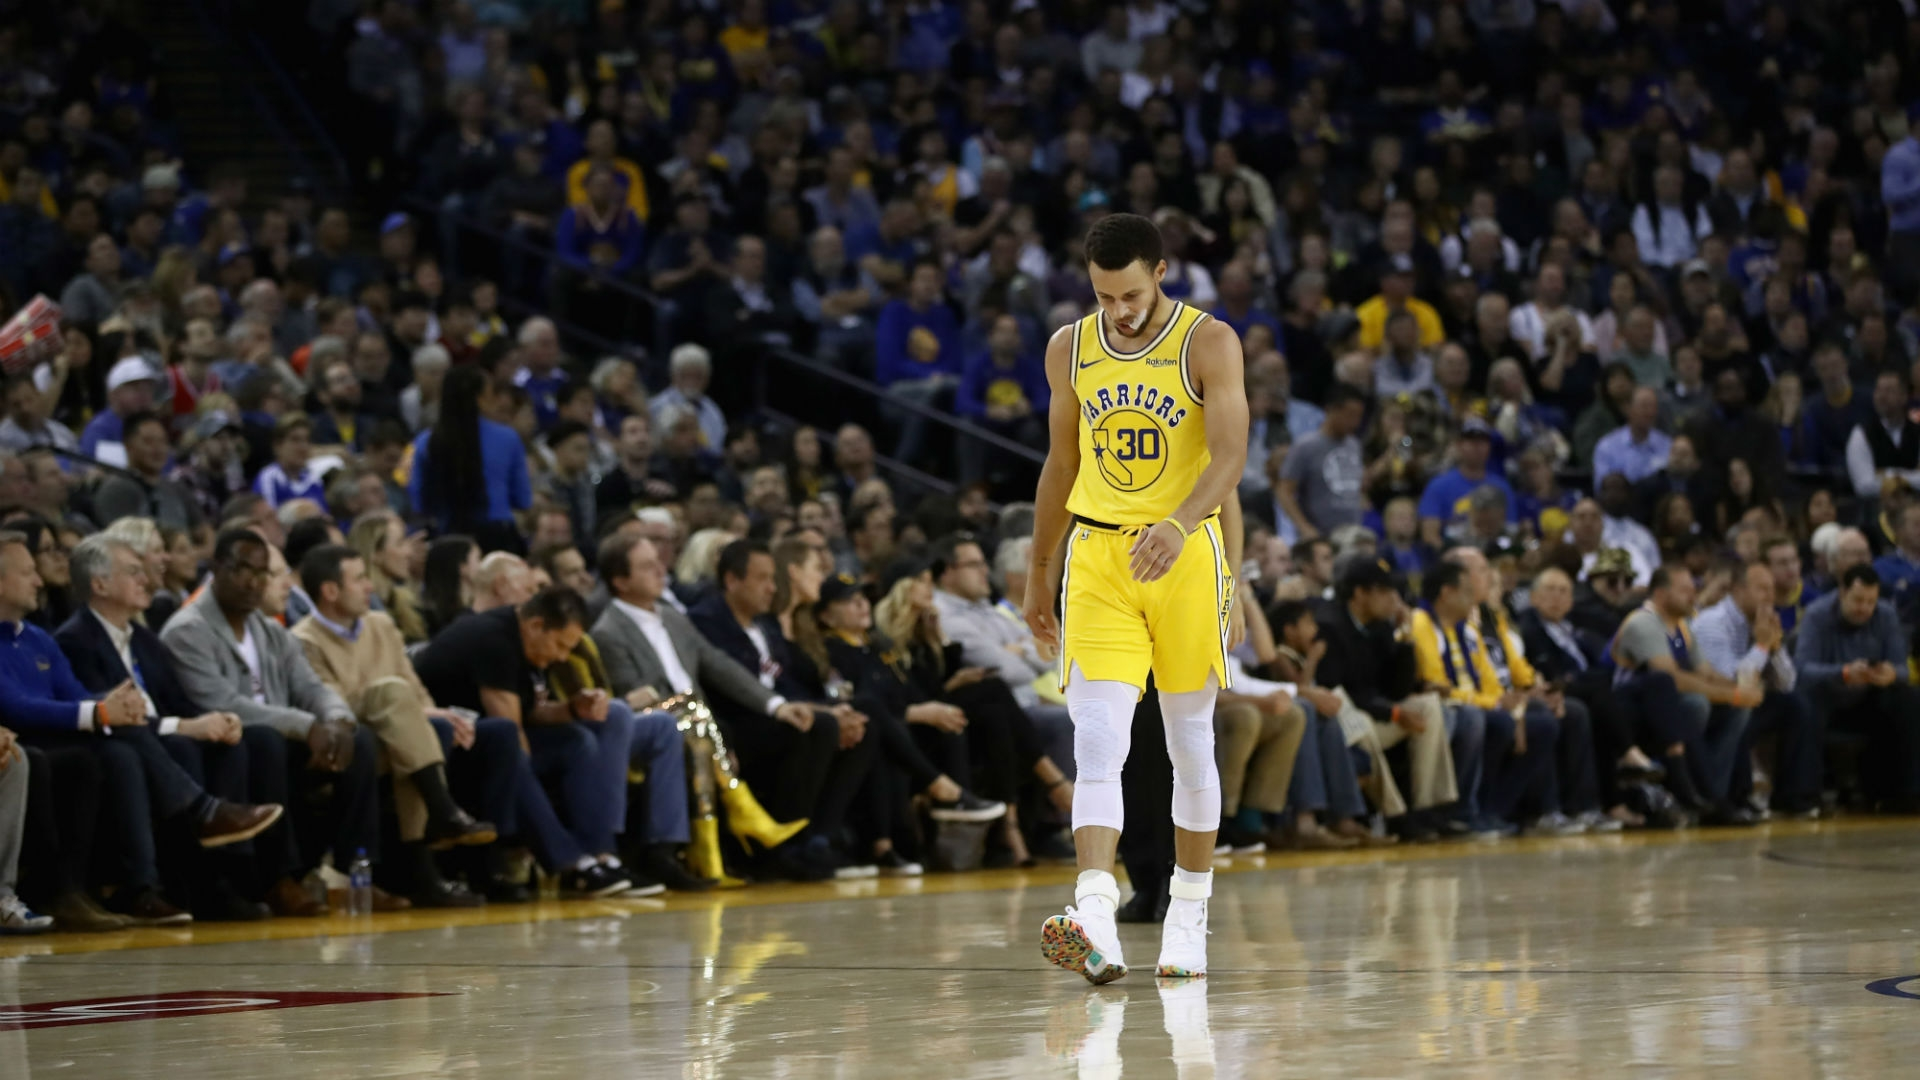 Steph Curry To Undergo Mri After Suffering Groin Injury In